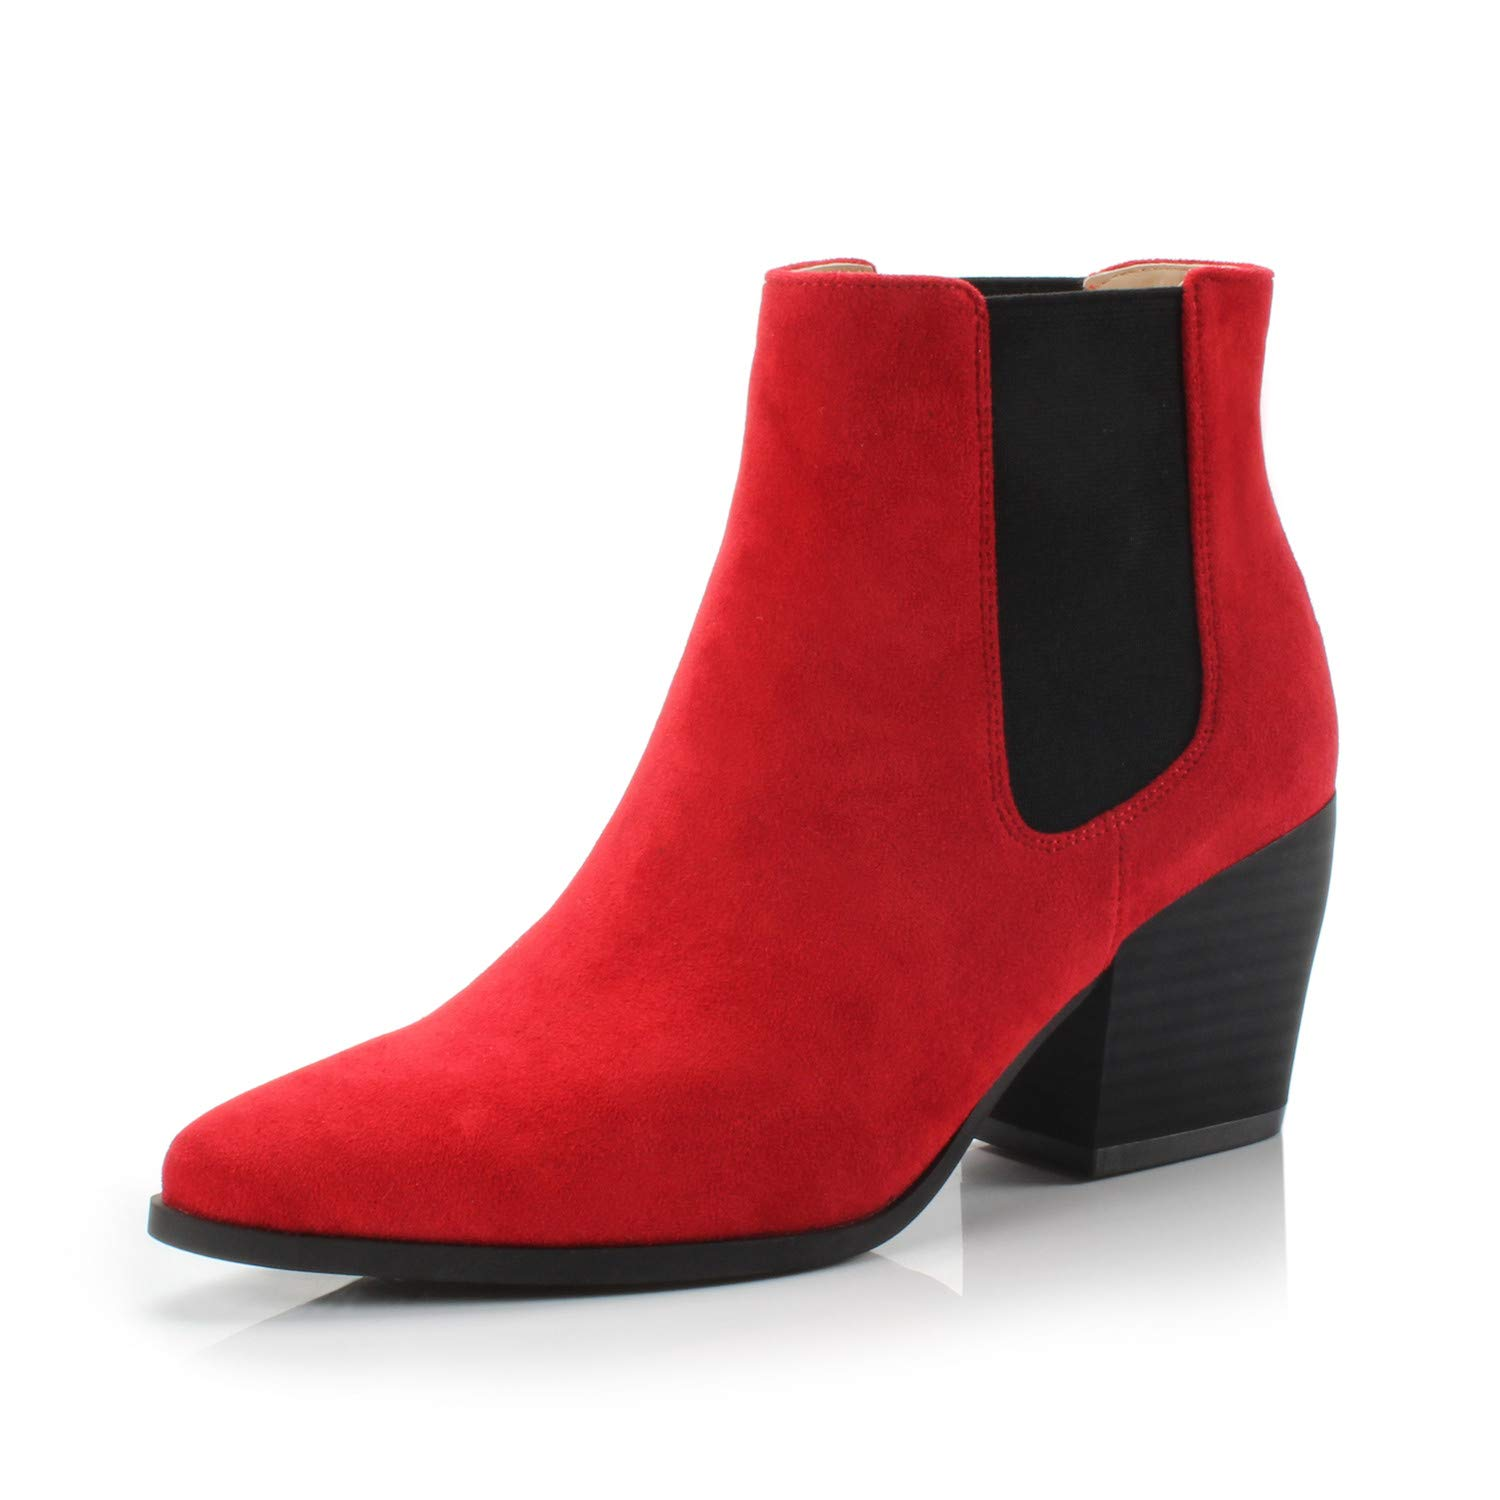 Bliss Red Fabric DUNION Women's Slip On Glamour Fashion Chunky Heel Ankle Boot